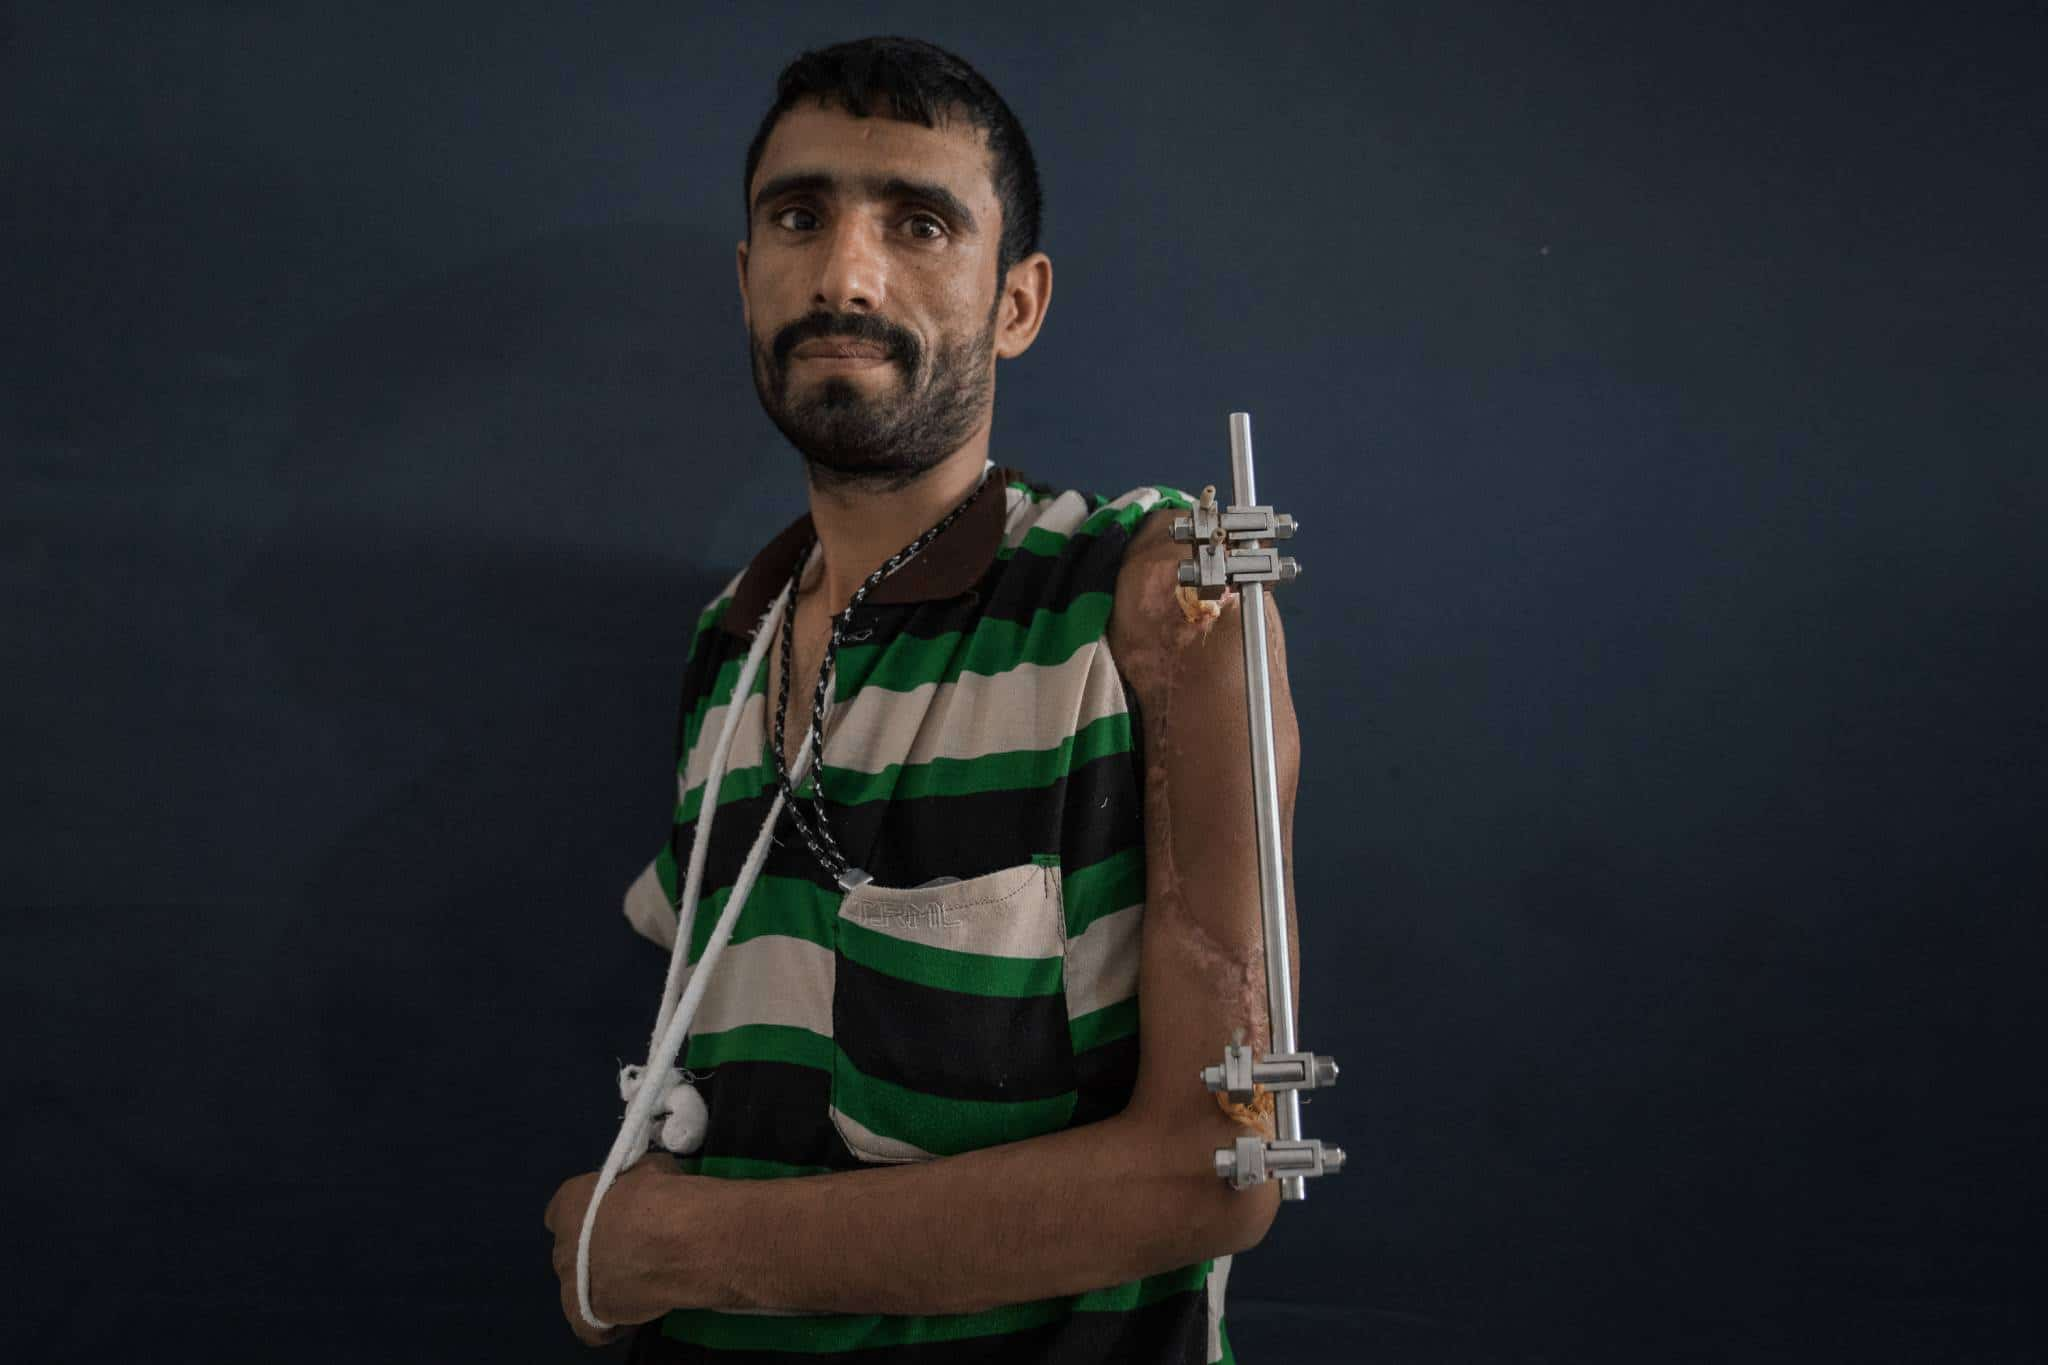 IDP COMMUNITY CENTER, SANA'A, YEMEN - 30 APRIL 2017.  Majed Shoei was injured in Taizz six months ago when a bomb exploded near to him. He broke his arm and leg as a result. He now lives with his brother in Sana'a, having fled Taizz to escape the hostilities and to seek medical treatment.   Money is tight for Majed, who has eight children at home. He used to be a construction worker in Taizz, but now he cannot work due to his medical condition, and cannot afford to pay his medical bills.